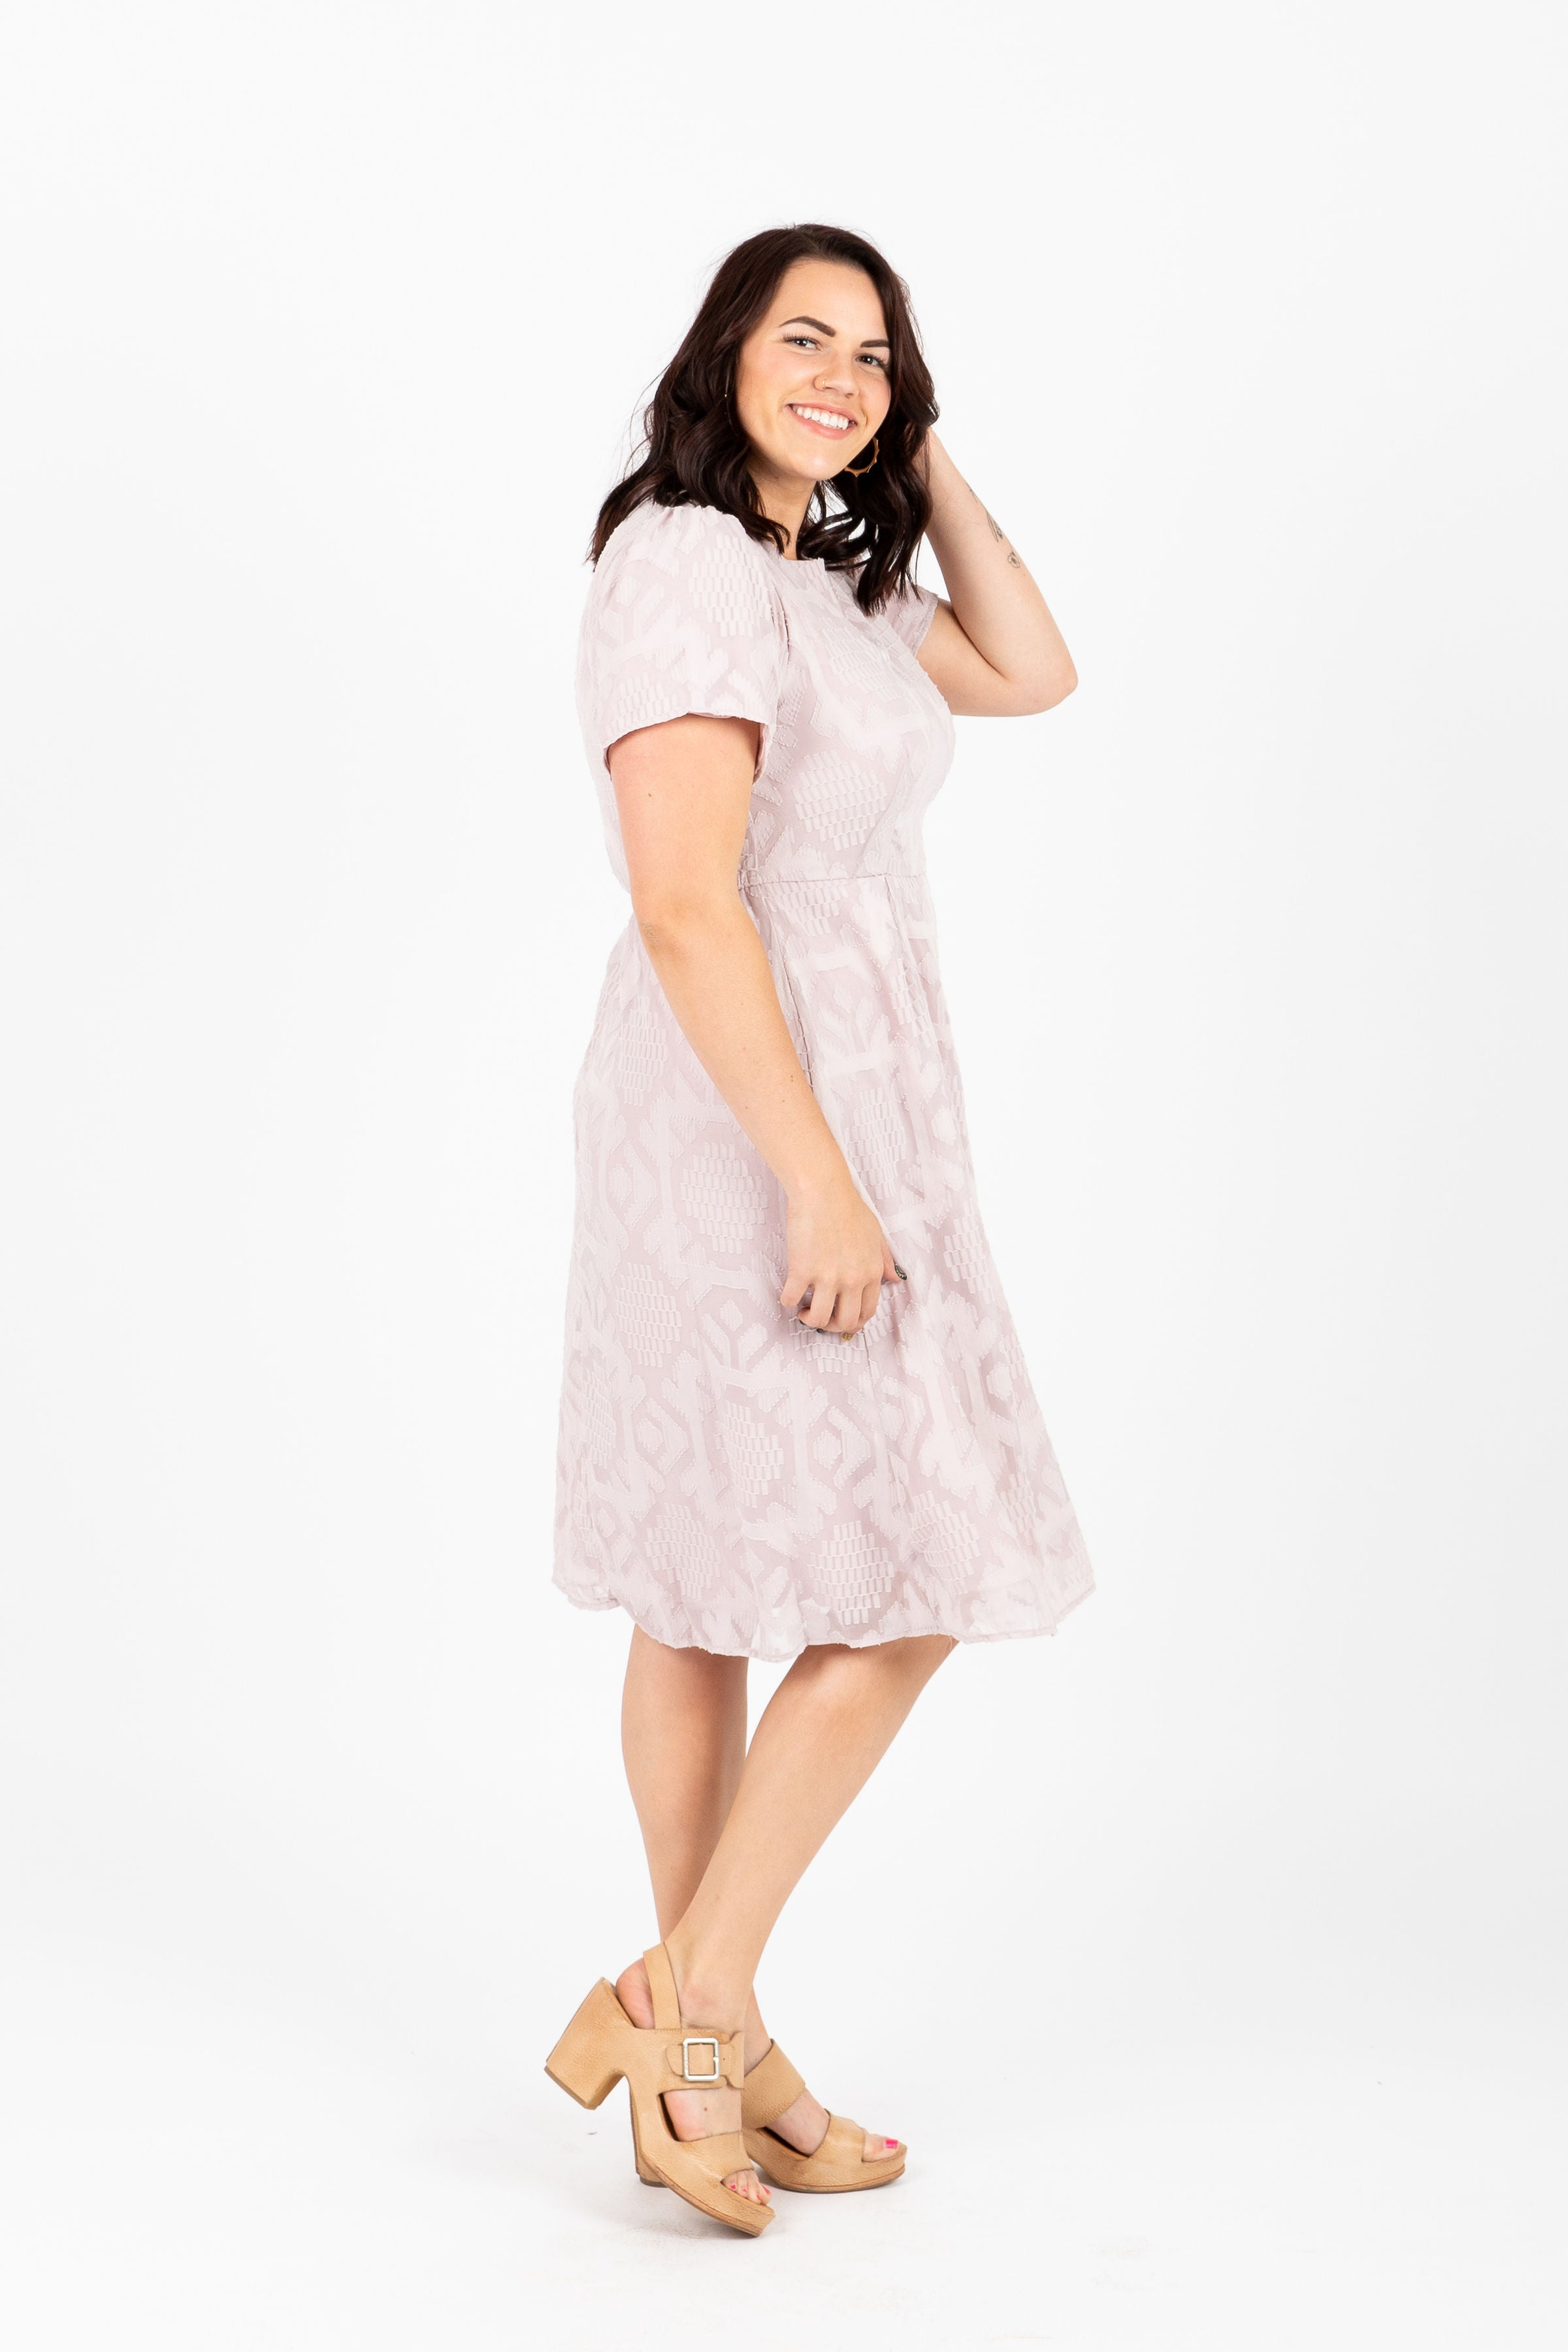 Piper & Scoot: The Grand Textured Lace Dress in Blush